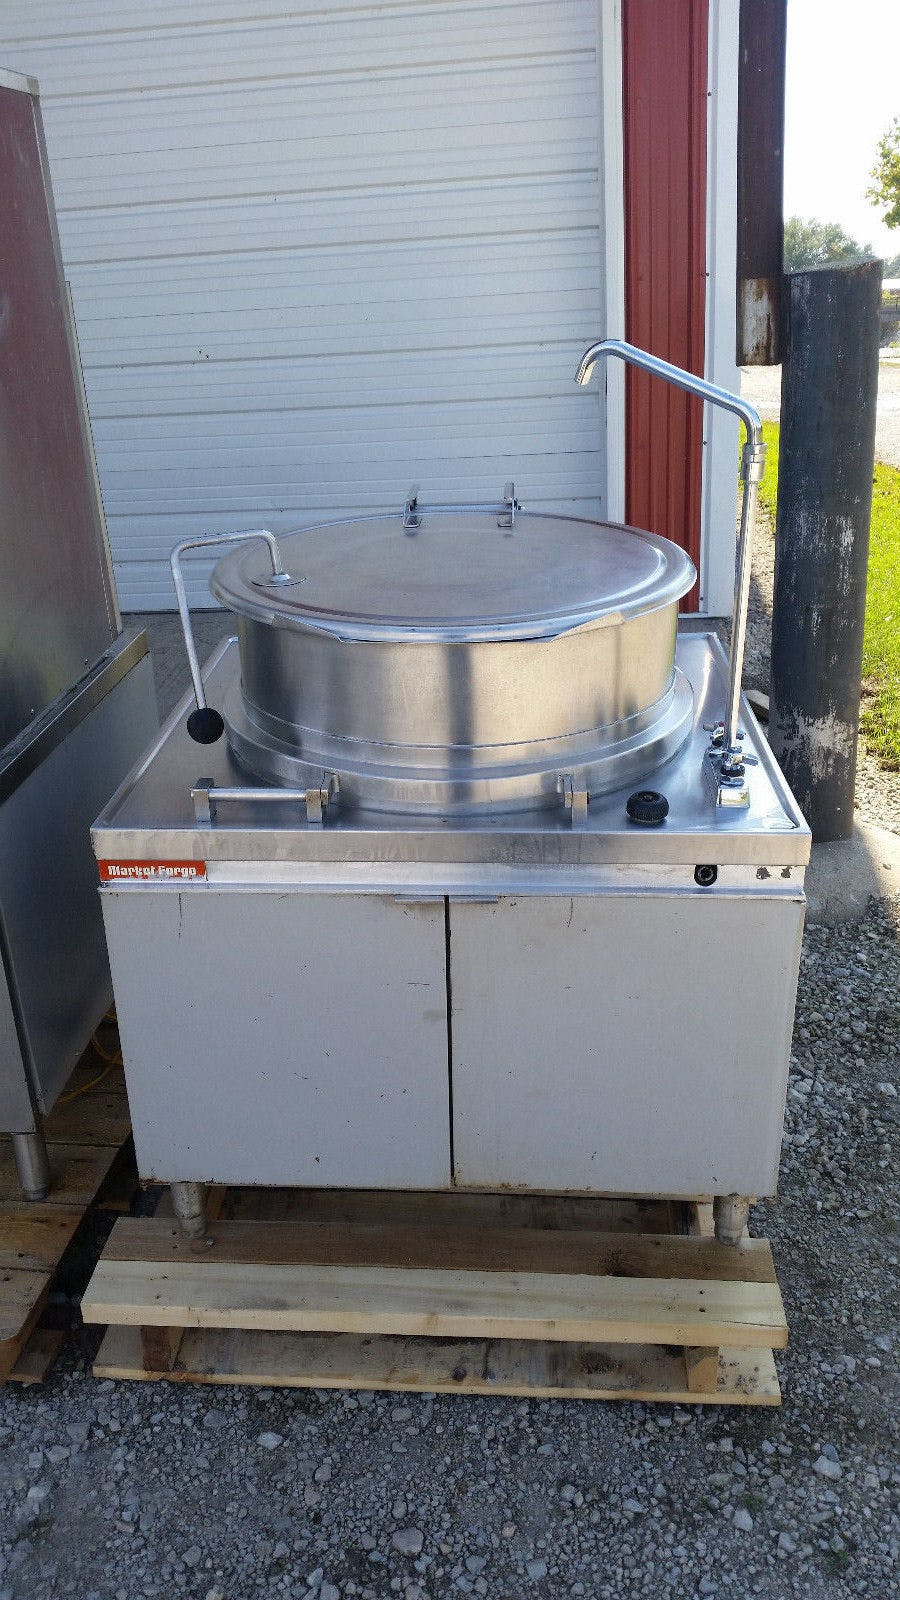 Market Forge Direct Steam Kettles MT40 40 Gal Need Power Source - sold by Jak's Restaurant Supply